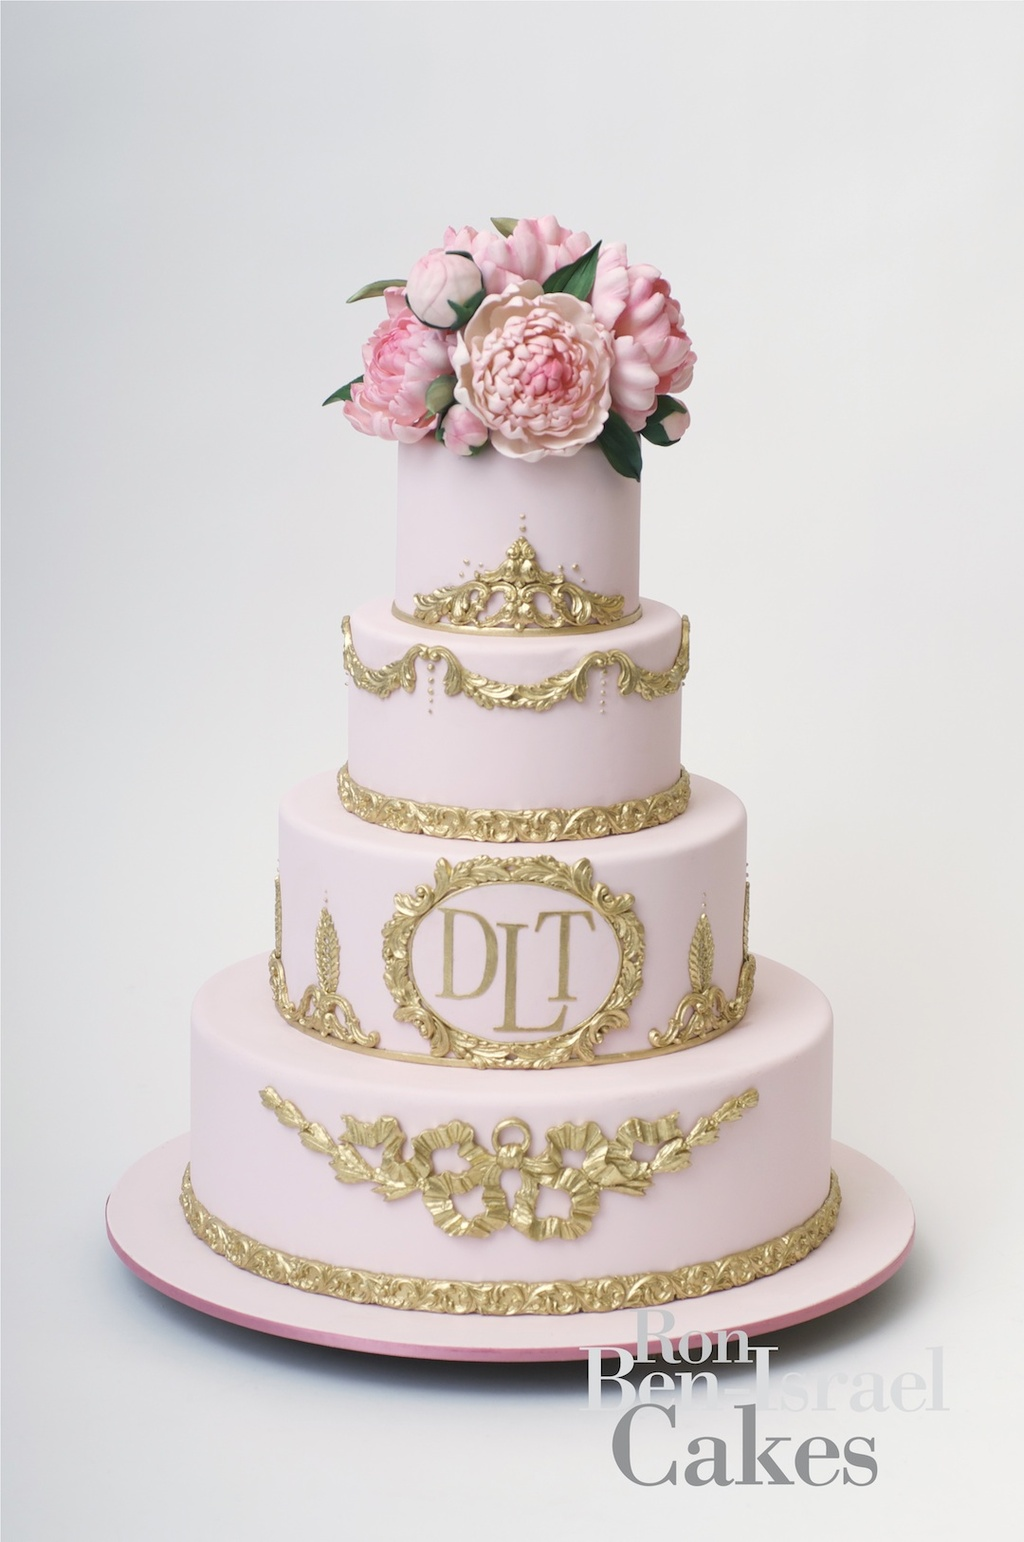 Wedding-cake-inspiration-ron-ben-isreal-wedding-cakes-light-pink-gold.full